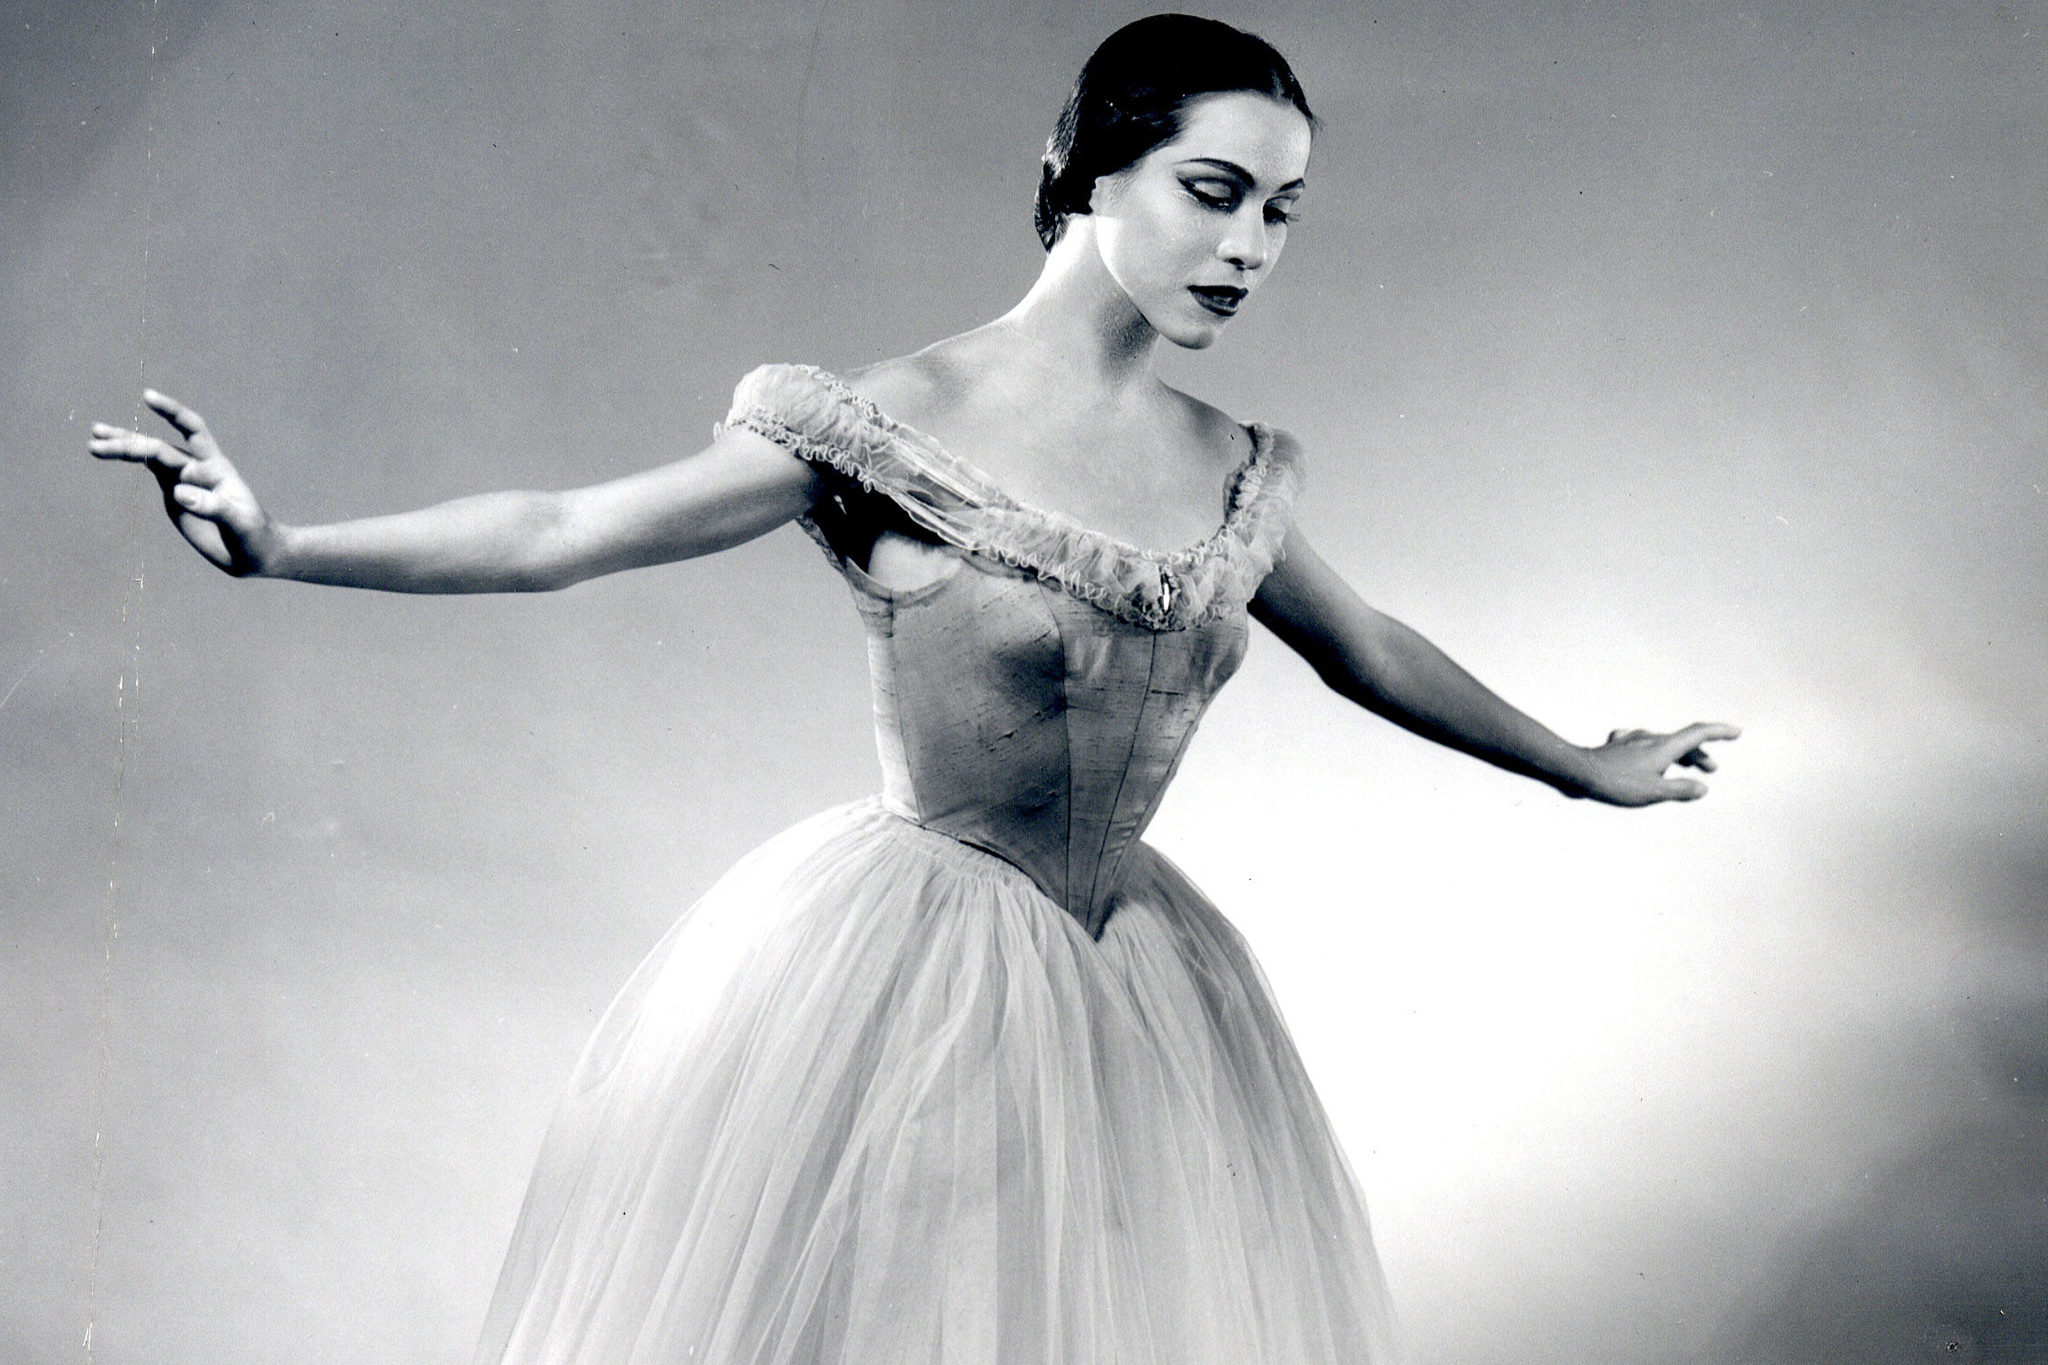 Explore the New York City Ballet's history at NYC archives